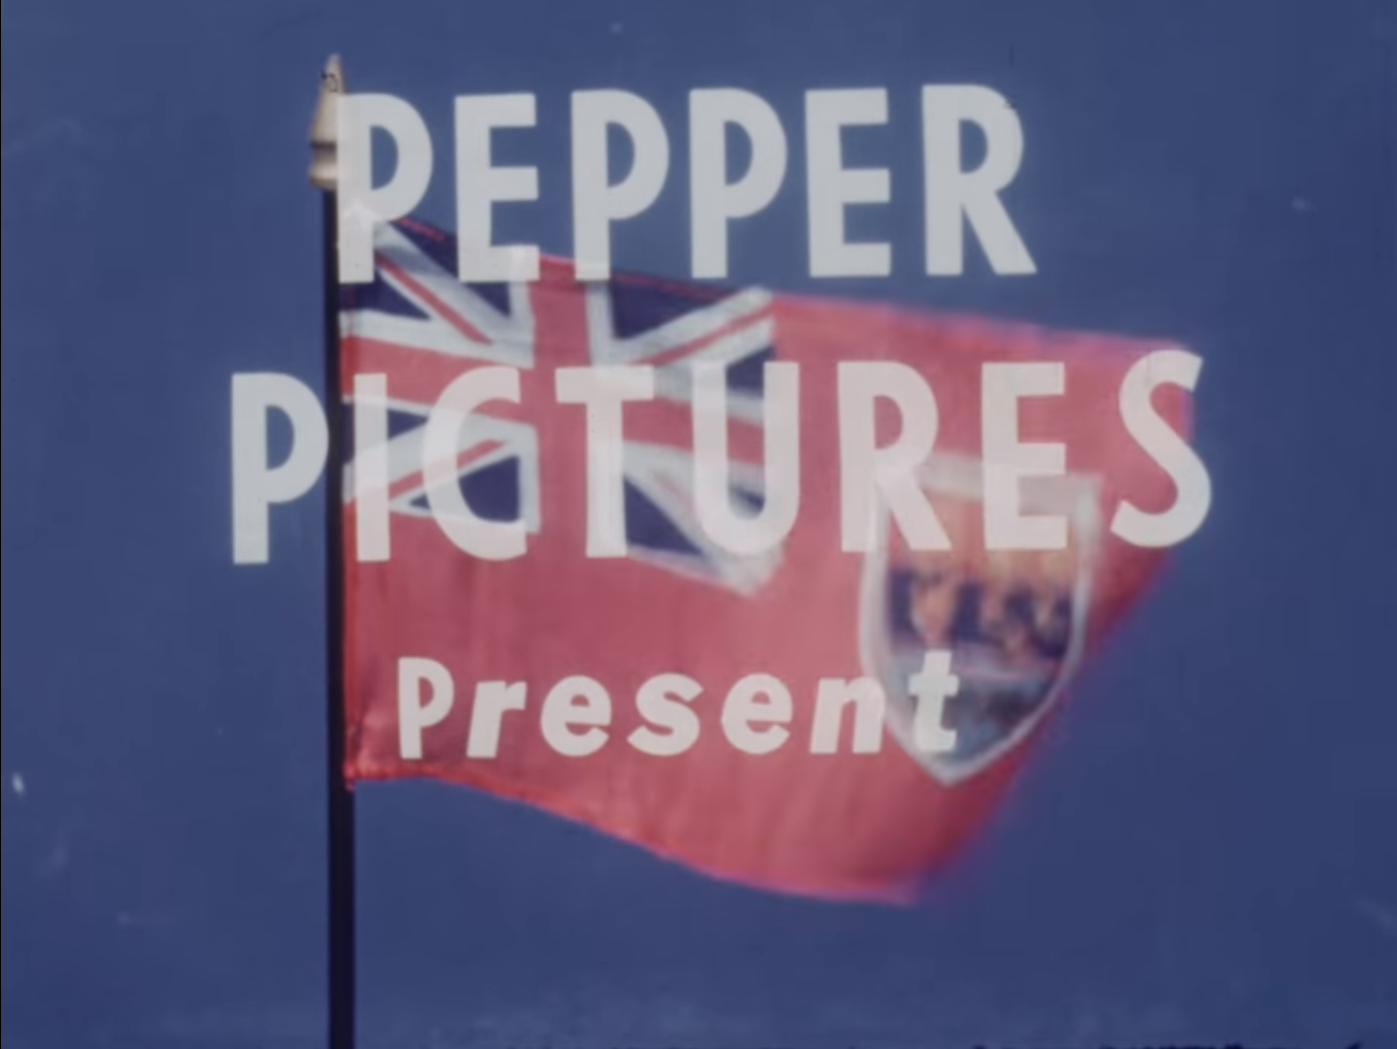 Indiana University Libraries Moving Image Archive